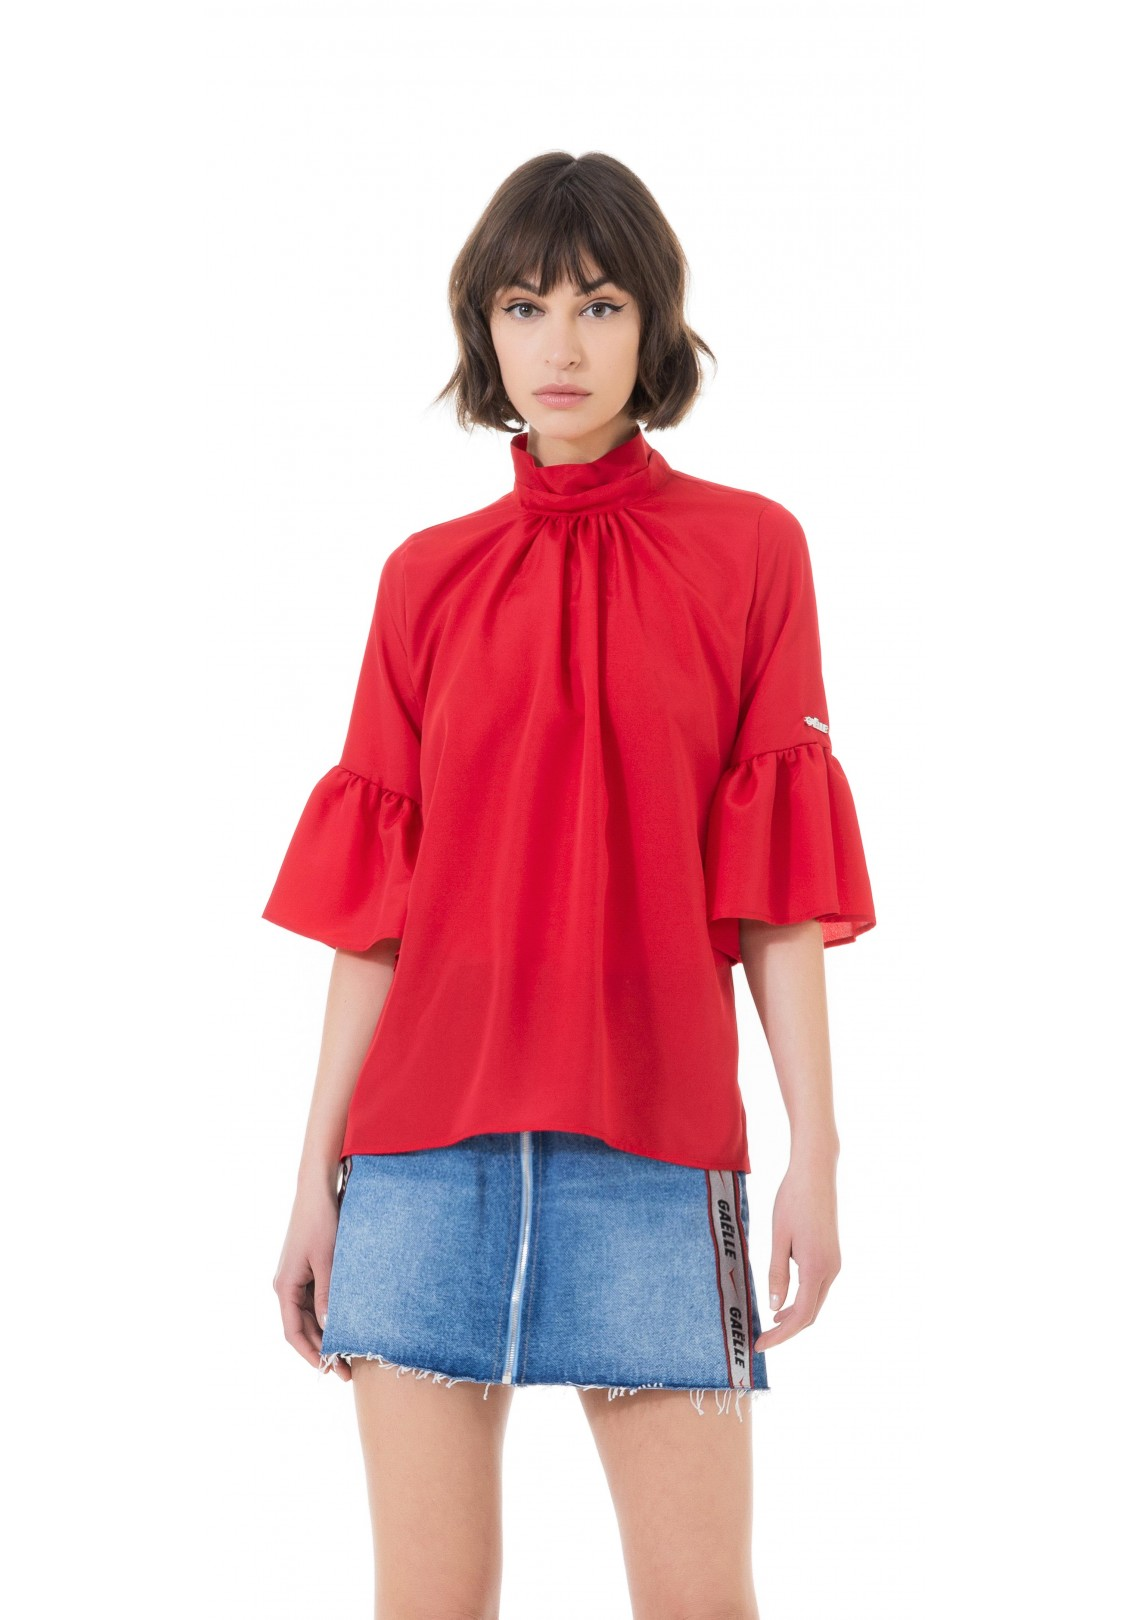 BLOUSE - GBD4775 - GAELLE PARIS